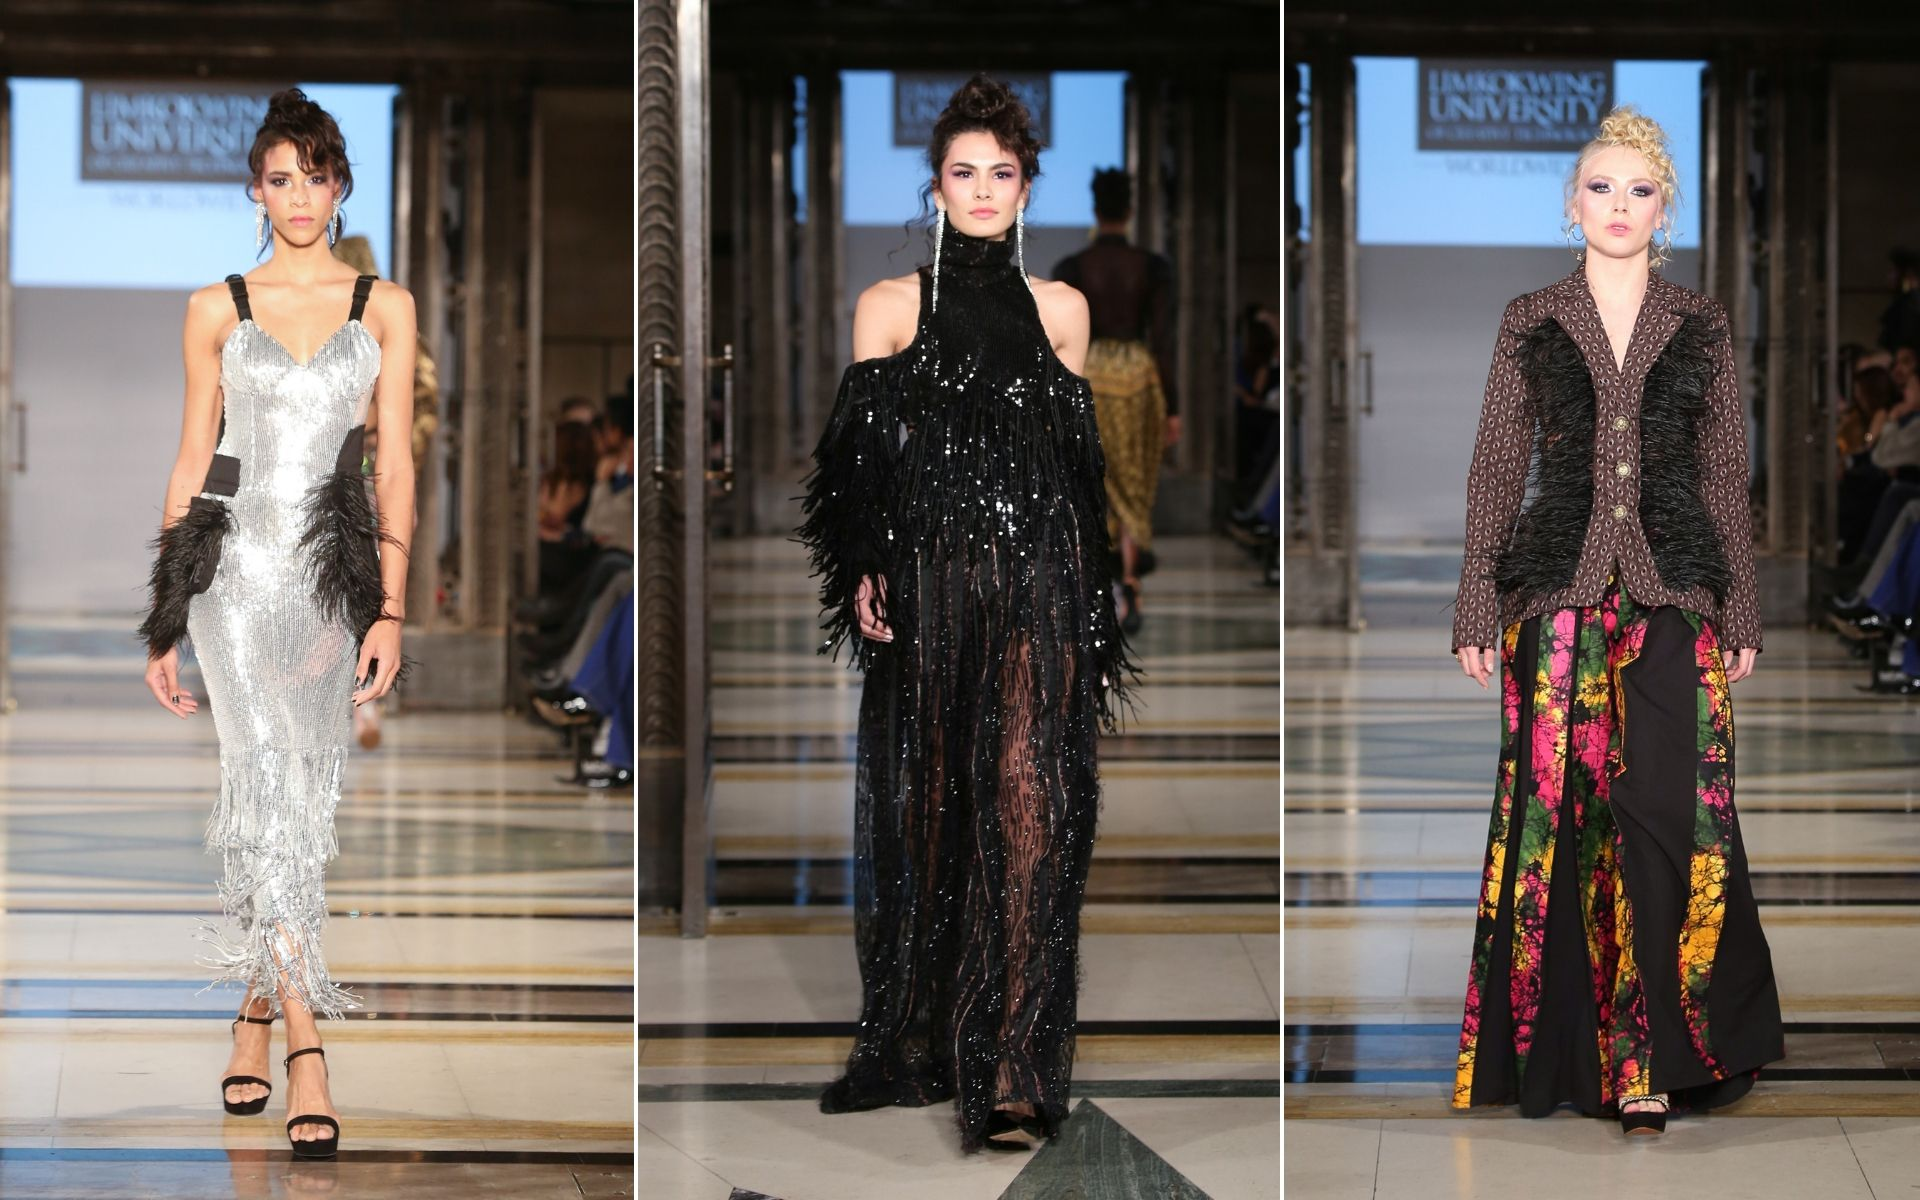 Overview: Limkokwing University's Fourth Showcase At London Fashion Week 2019